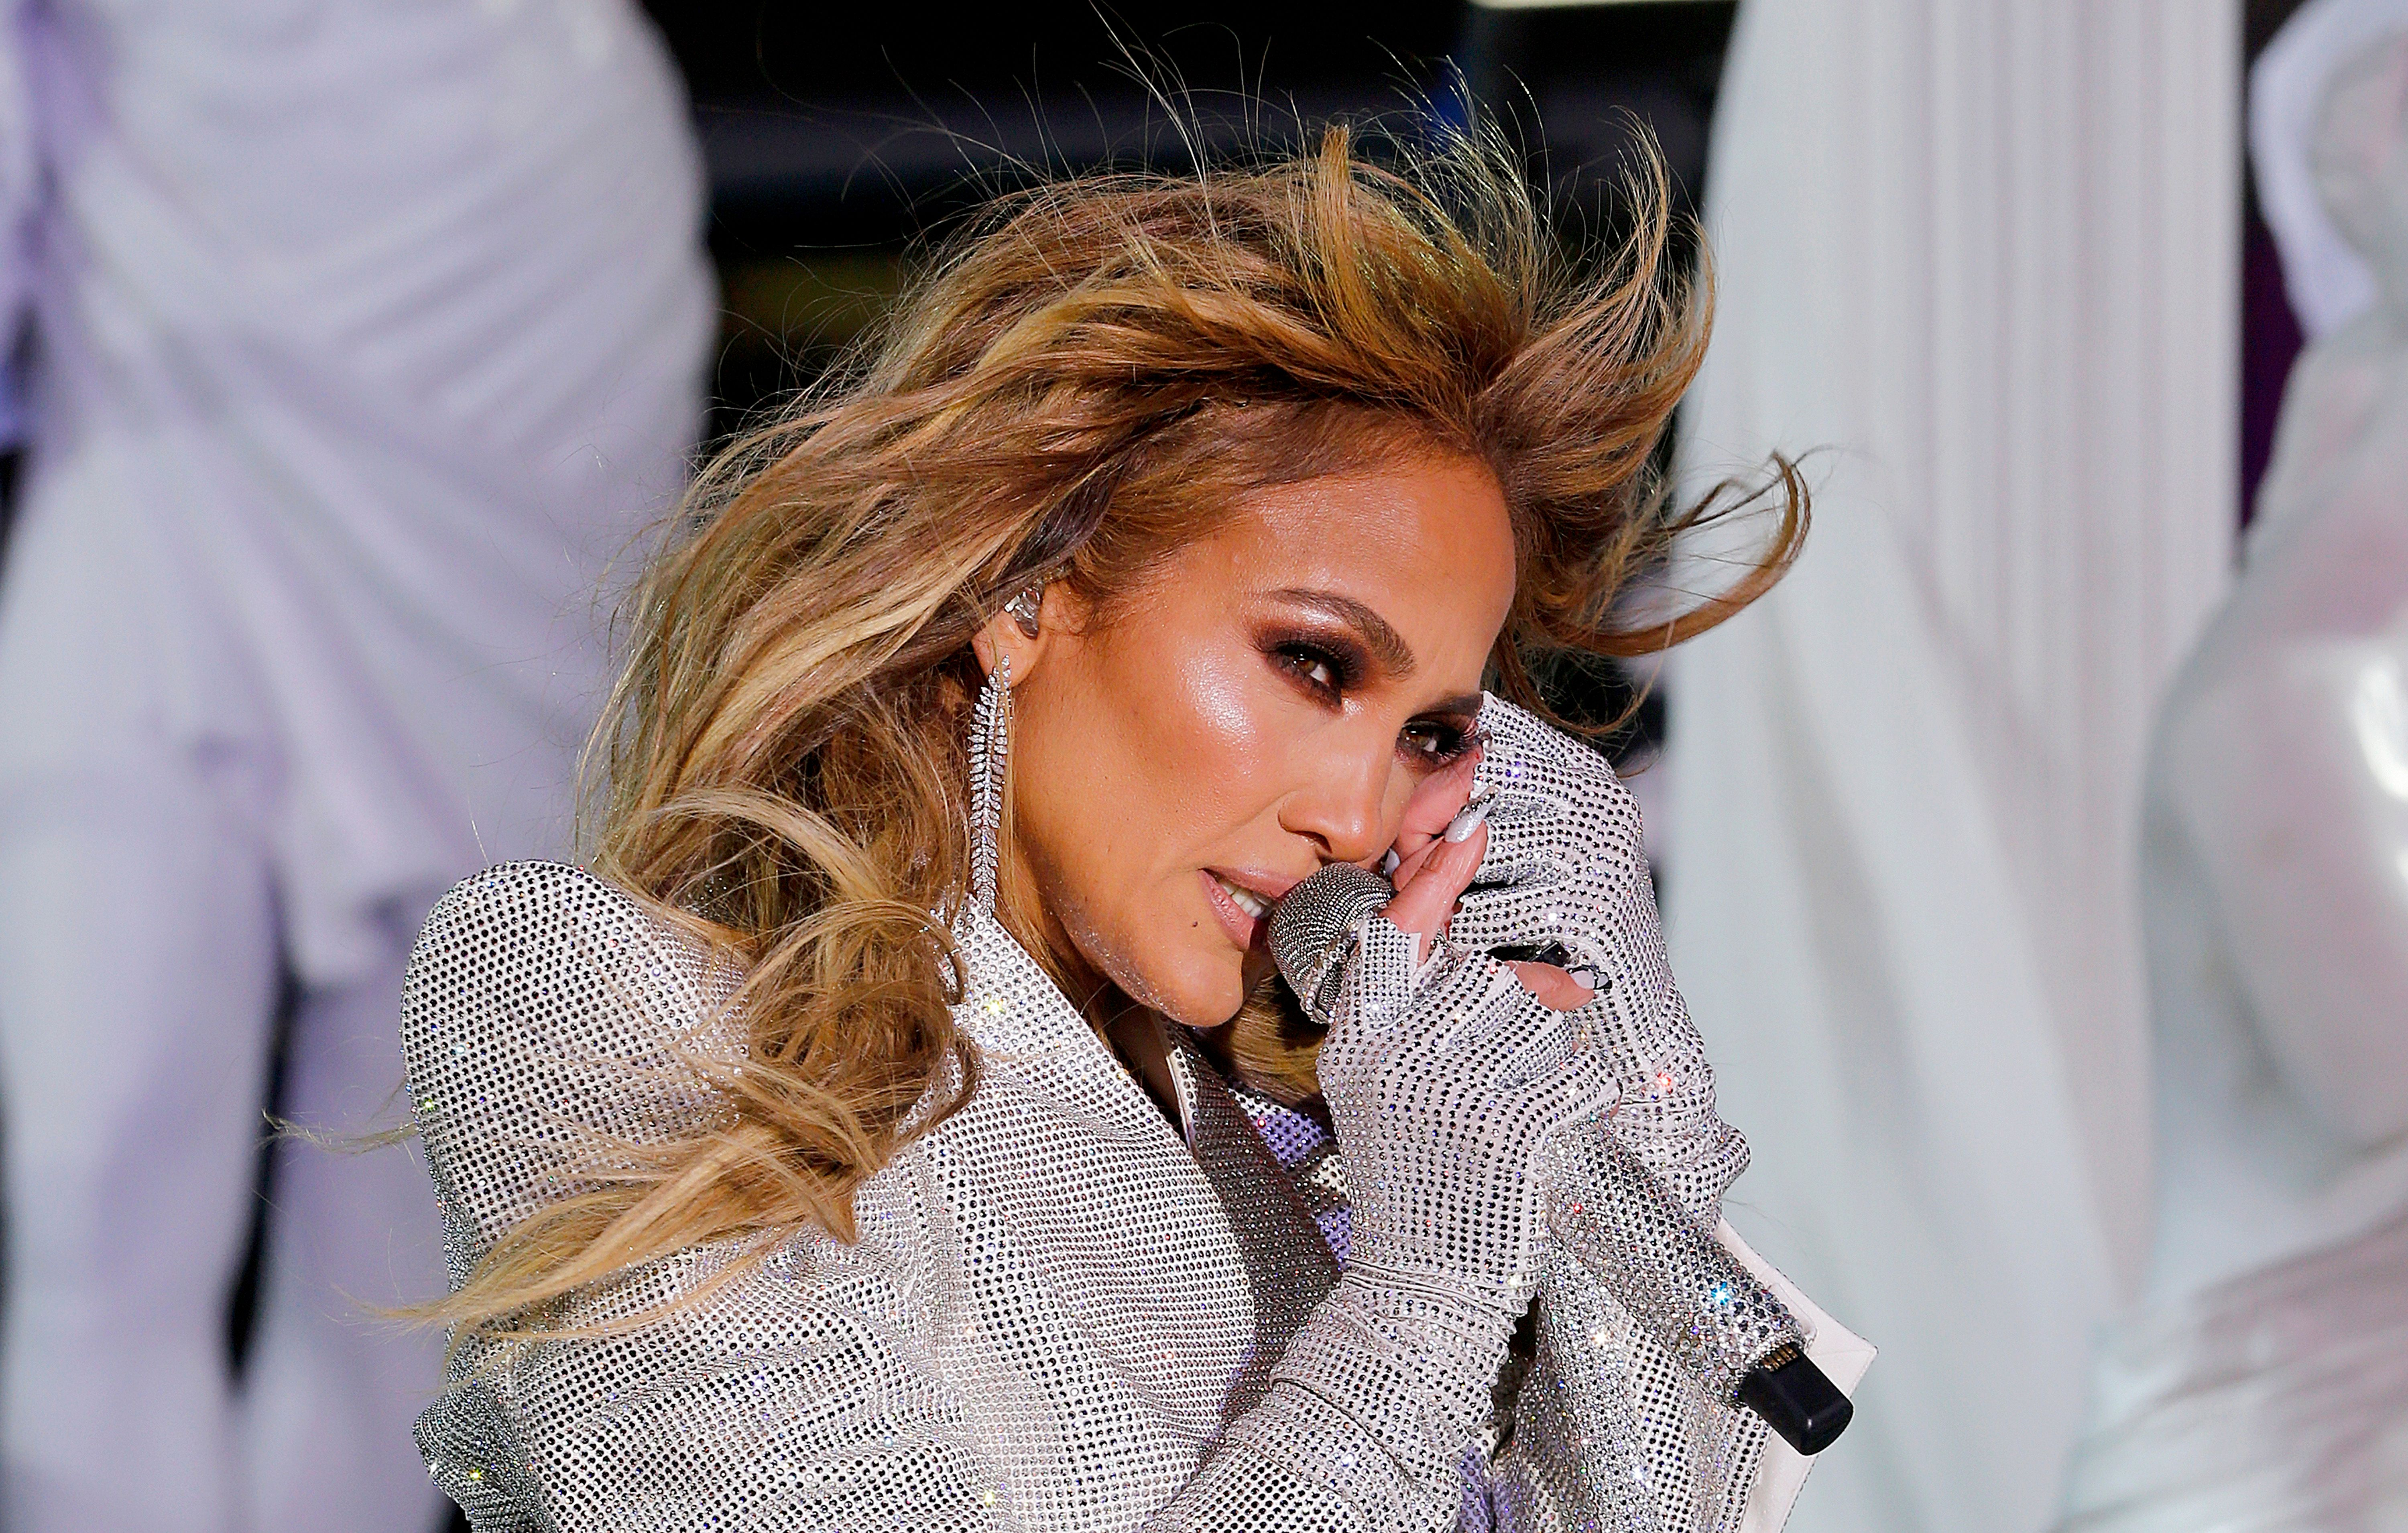 Jennifer Lopez live from Times Square during 2021 New Year's Eve celebrations on December 31, 2020 |Getty Images